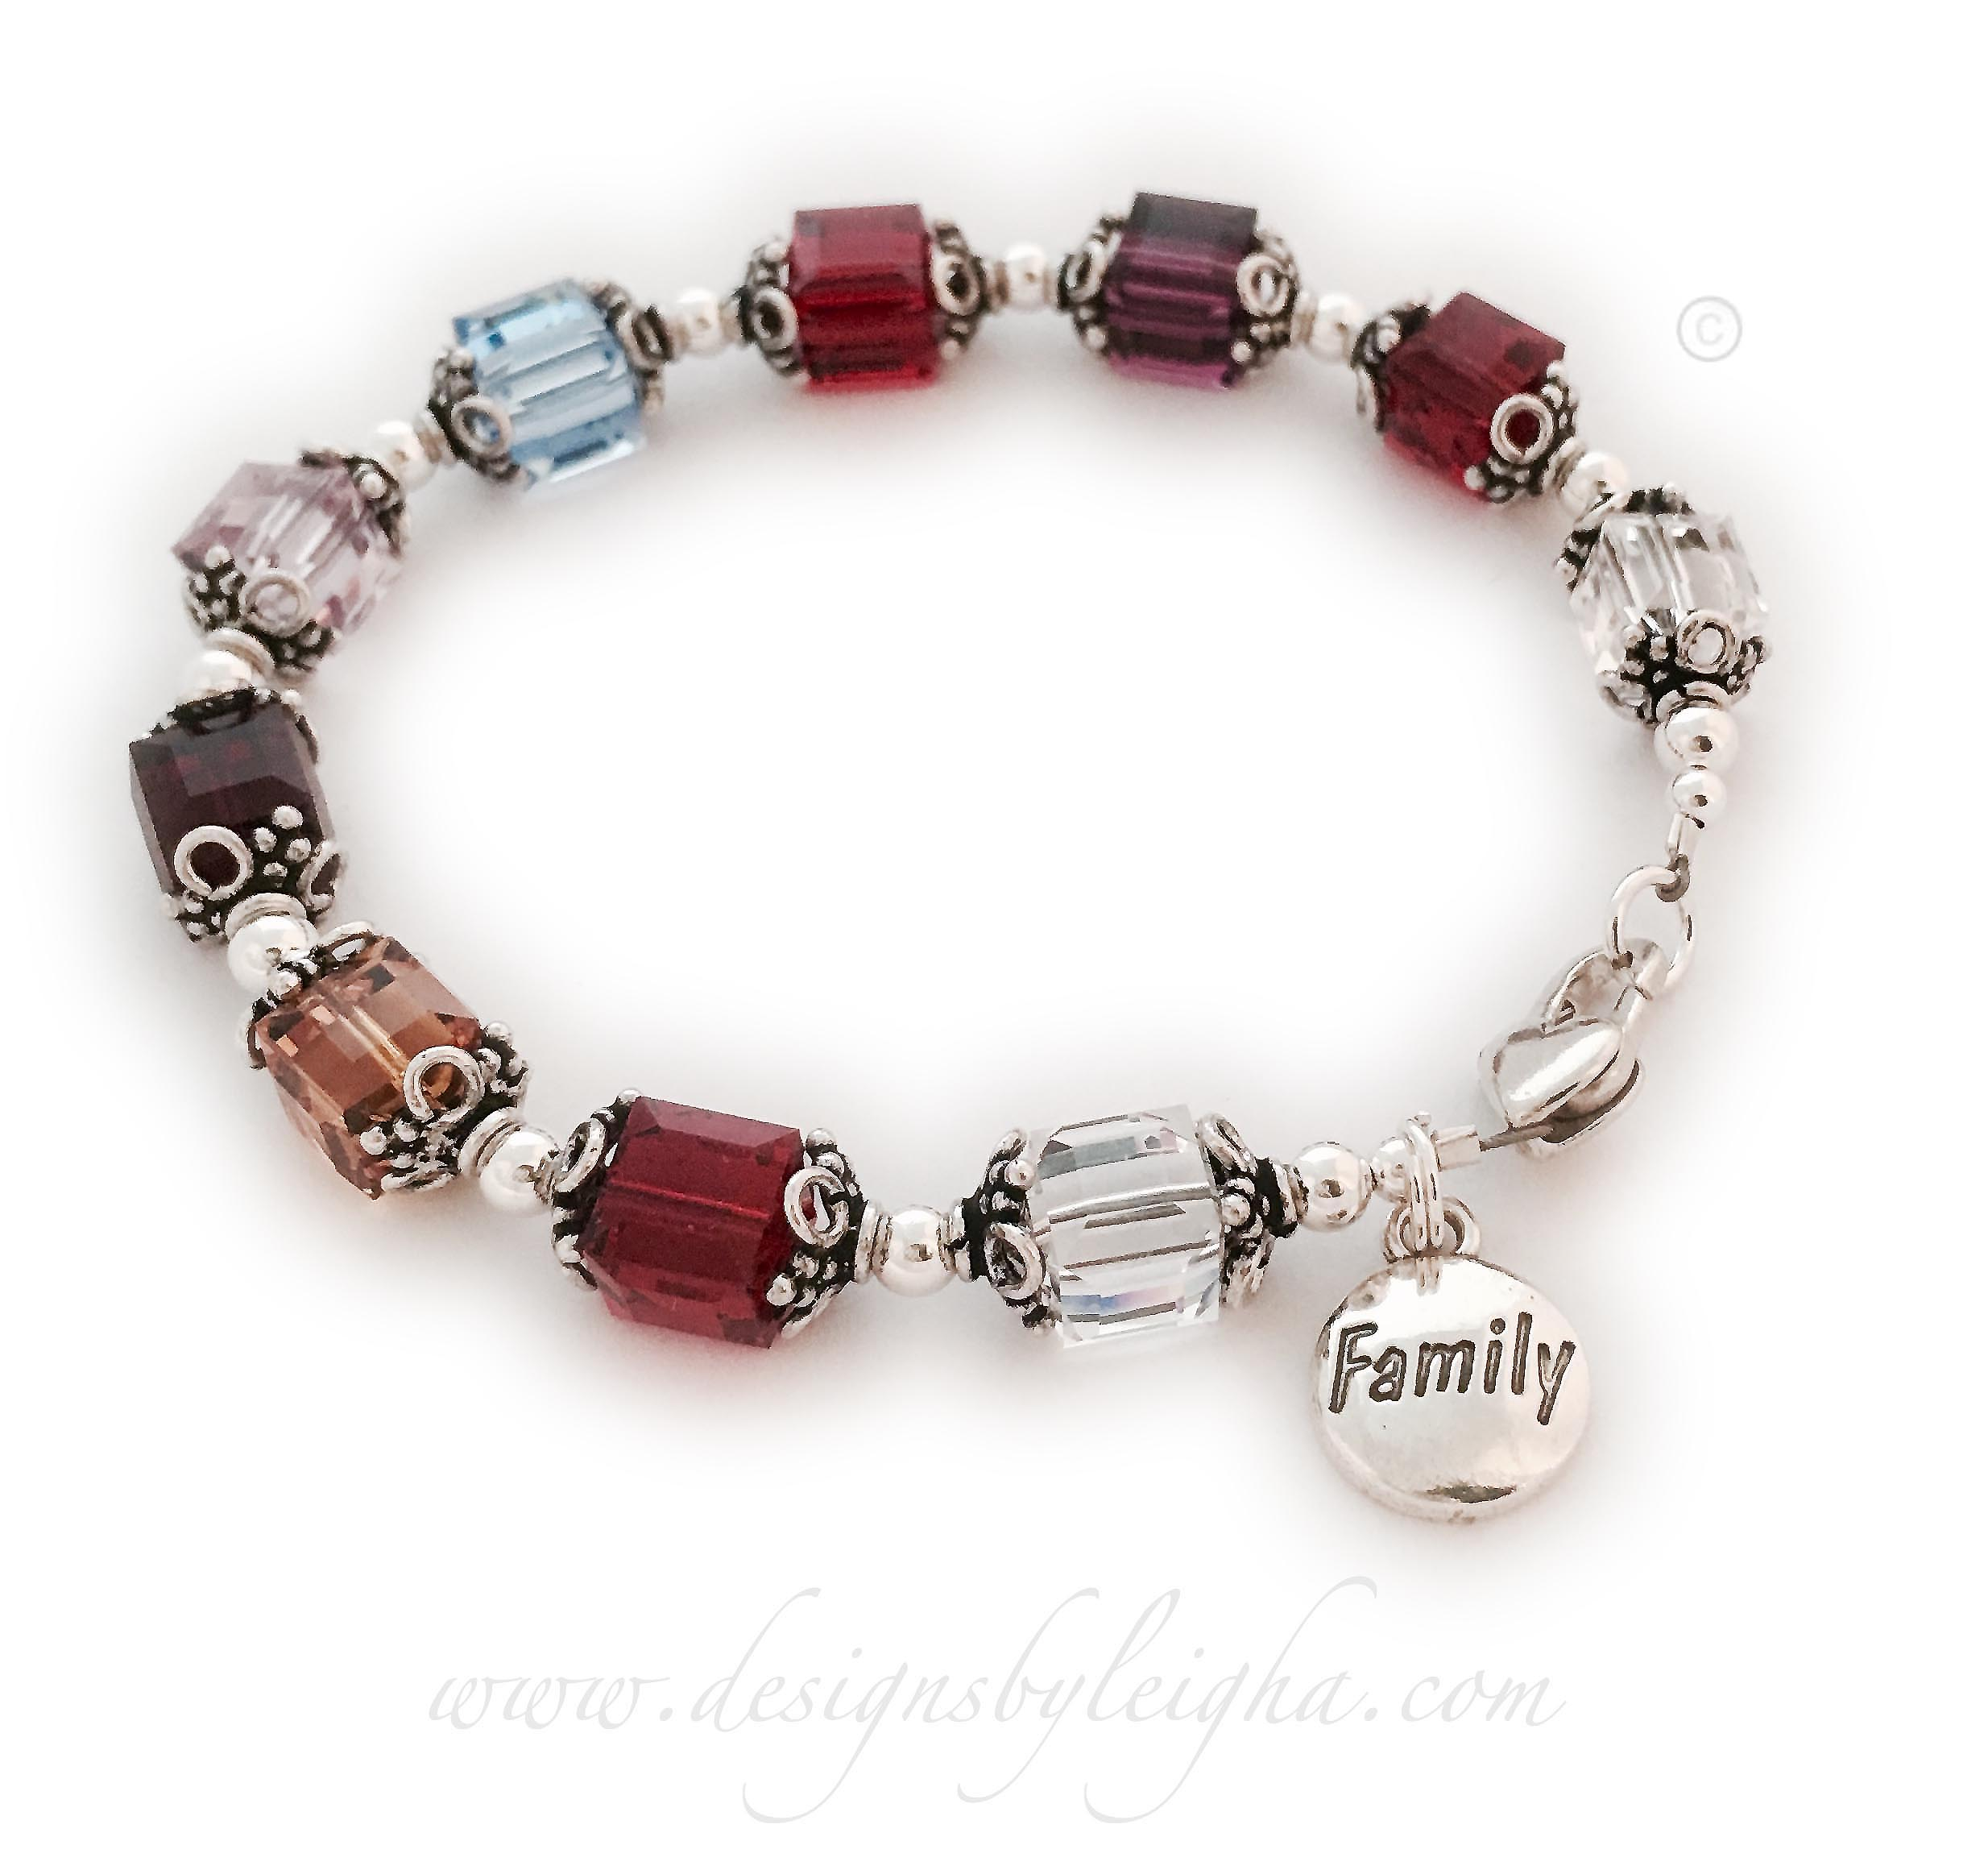 This is a 1-string Crystal Birthstone Bracelet is shown with 10 birthstones and they added a FAMILY Charm. Birthstones shown: April (Diamond), July (Ruby), November (Golden Topaz), January (Garnet), June (Light Purple), March (Aquamarine), July (Ruby), February (Amethyst), July (Ruby), April (Diamond)